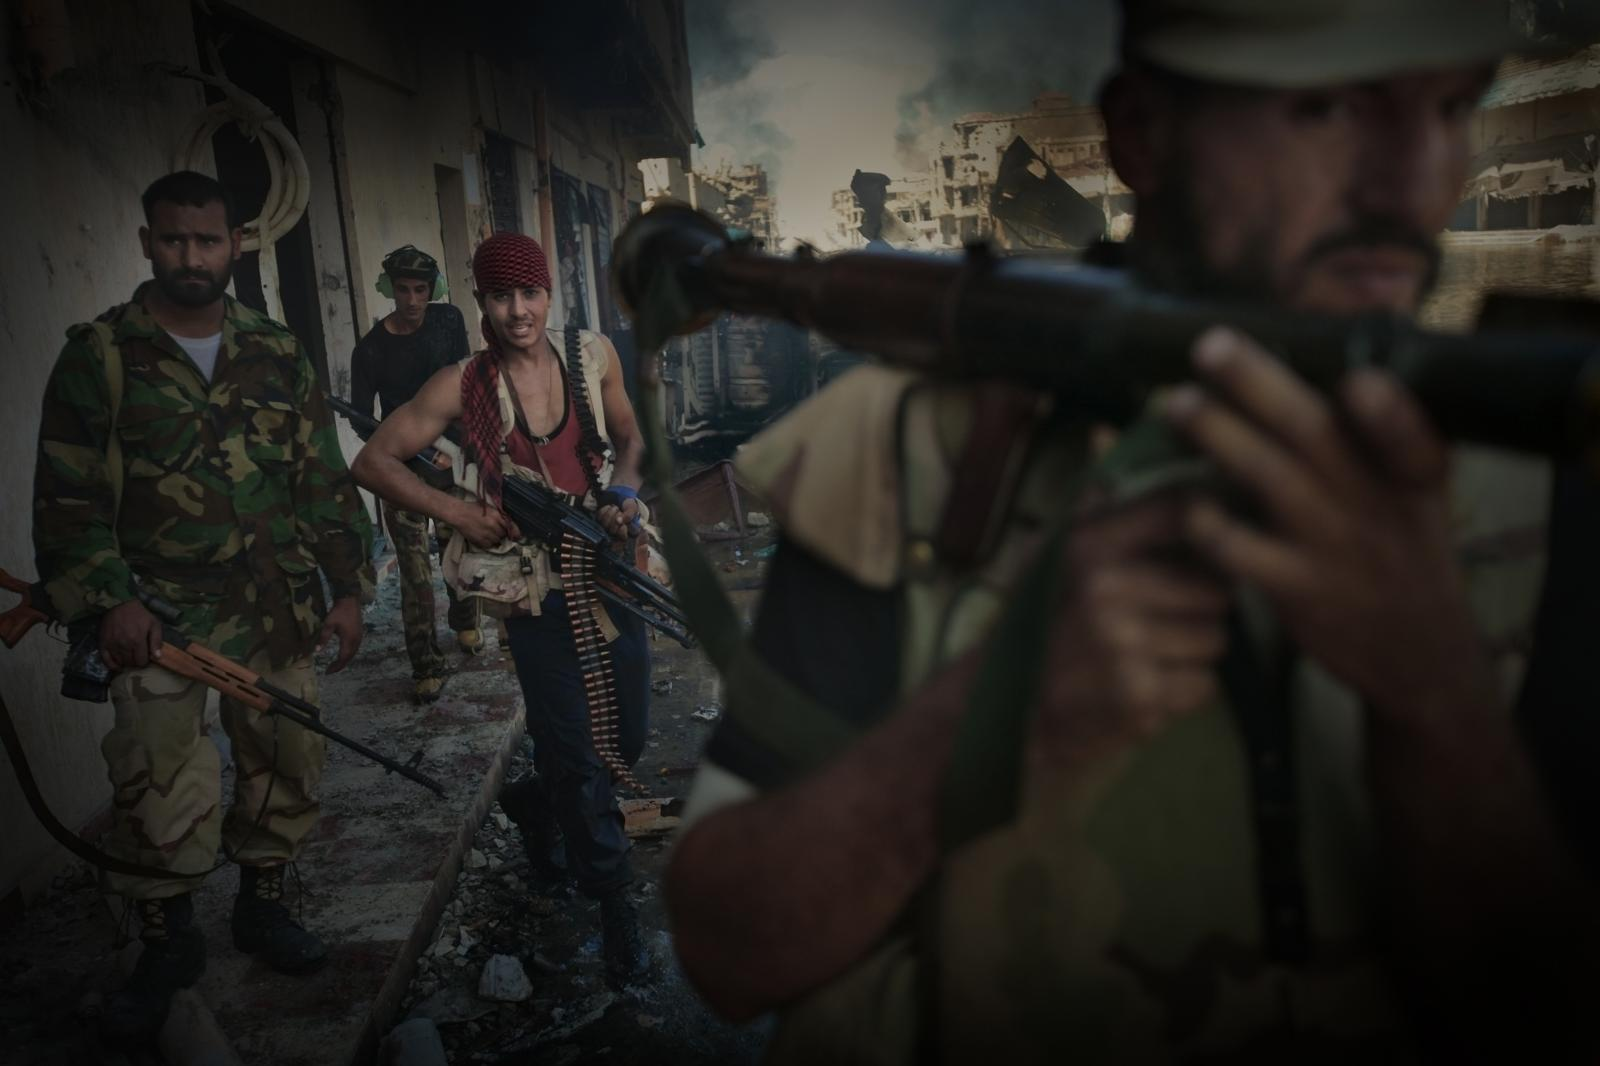 Fighters in Sirte, a city destroyed by the bombings. Years later, it would become one of the capitals of the ISIS caliphate (2011).